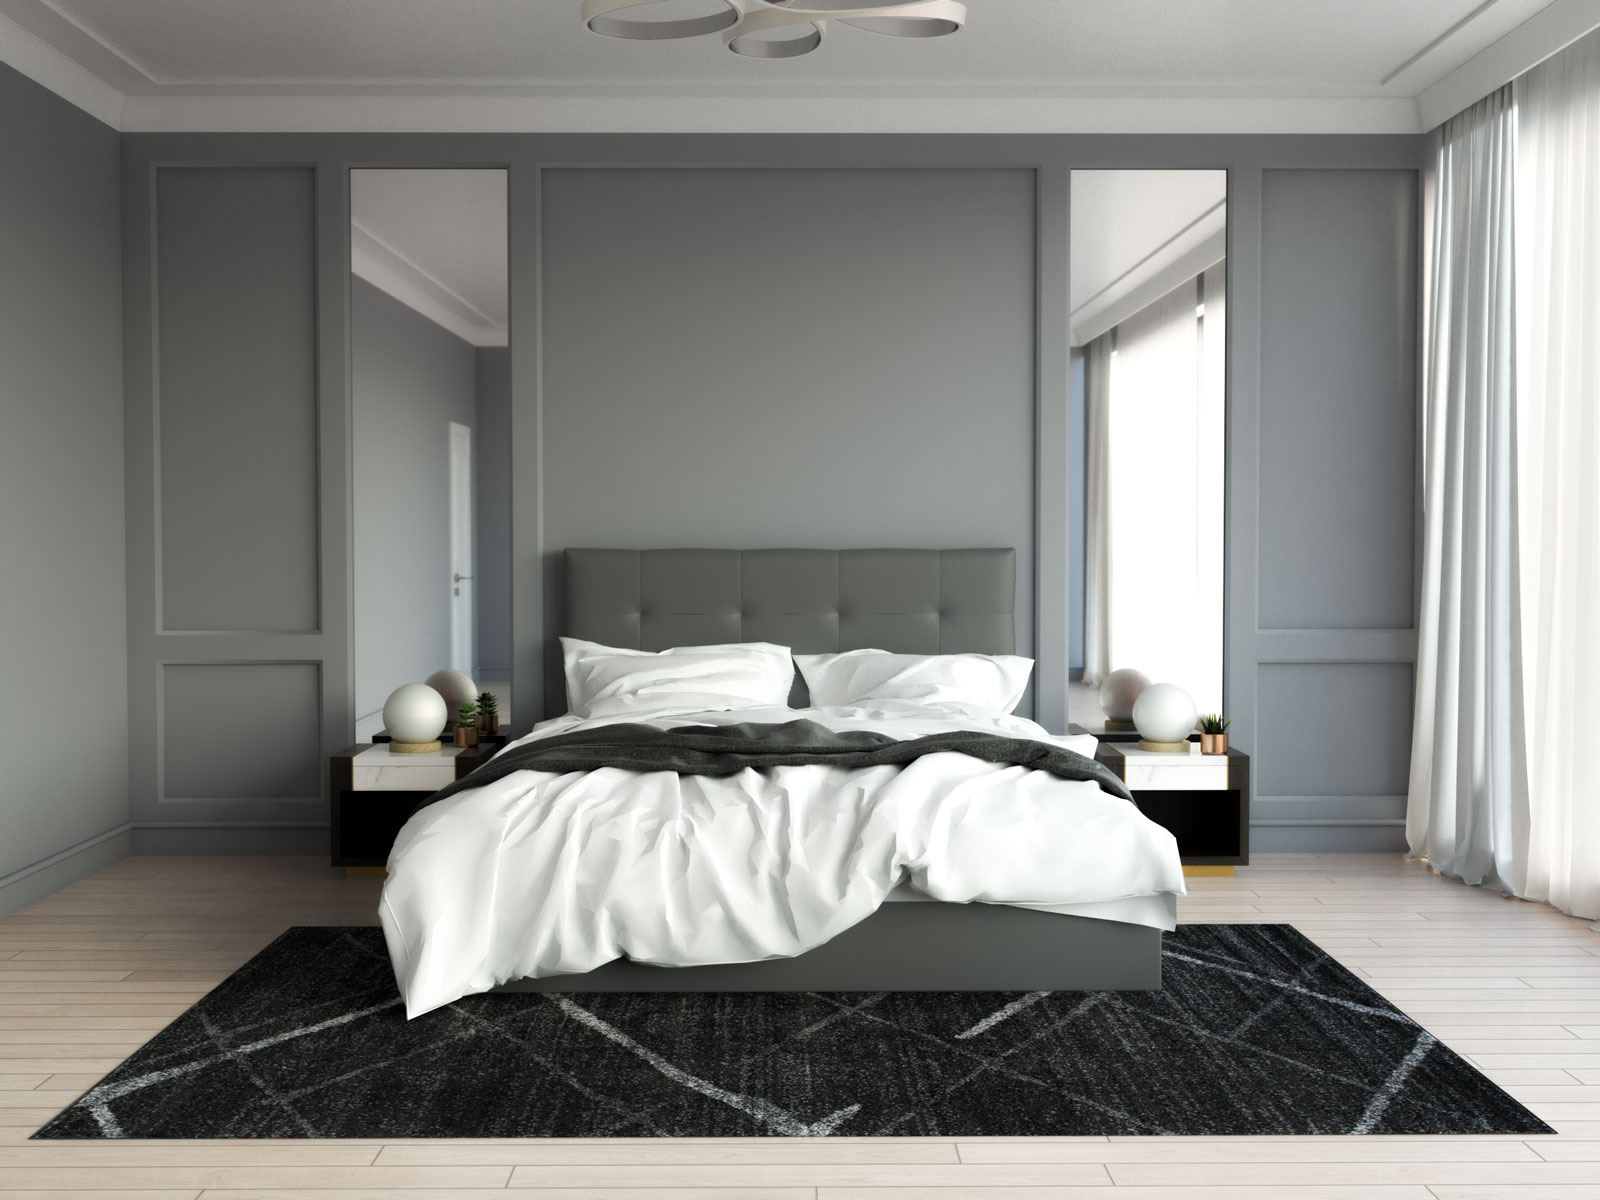 Contemporary black rug with gray bed